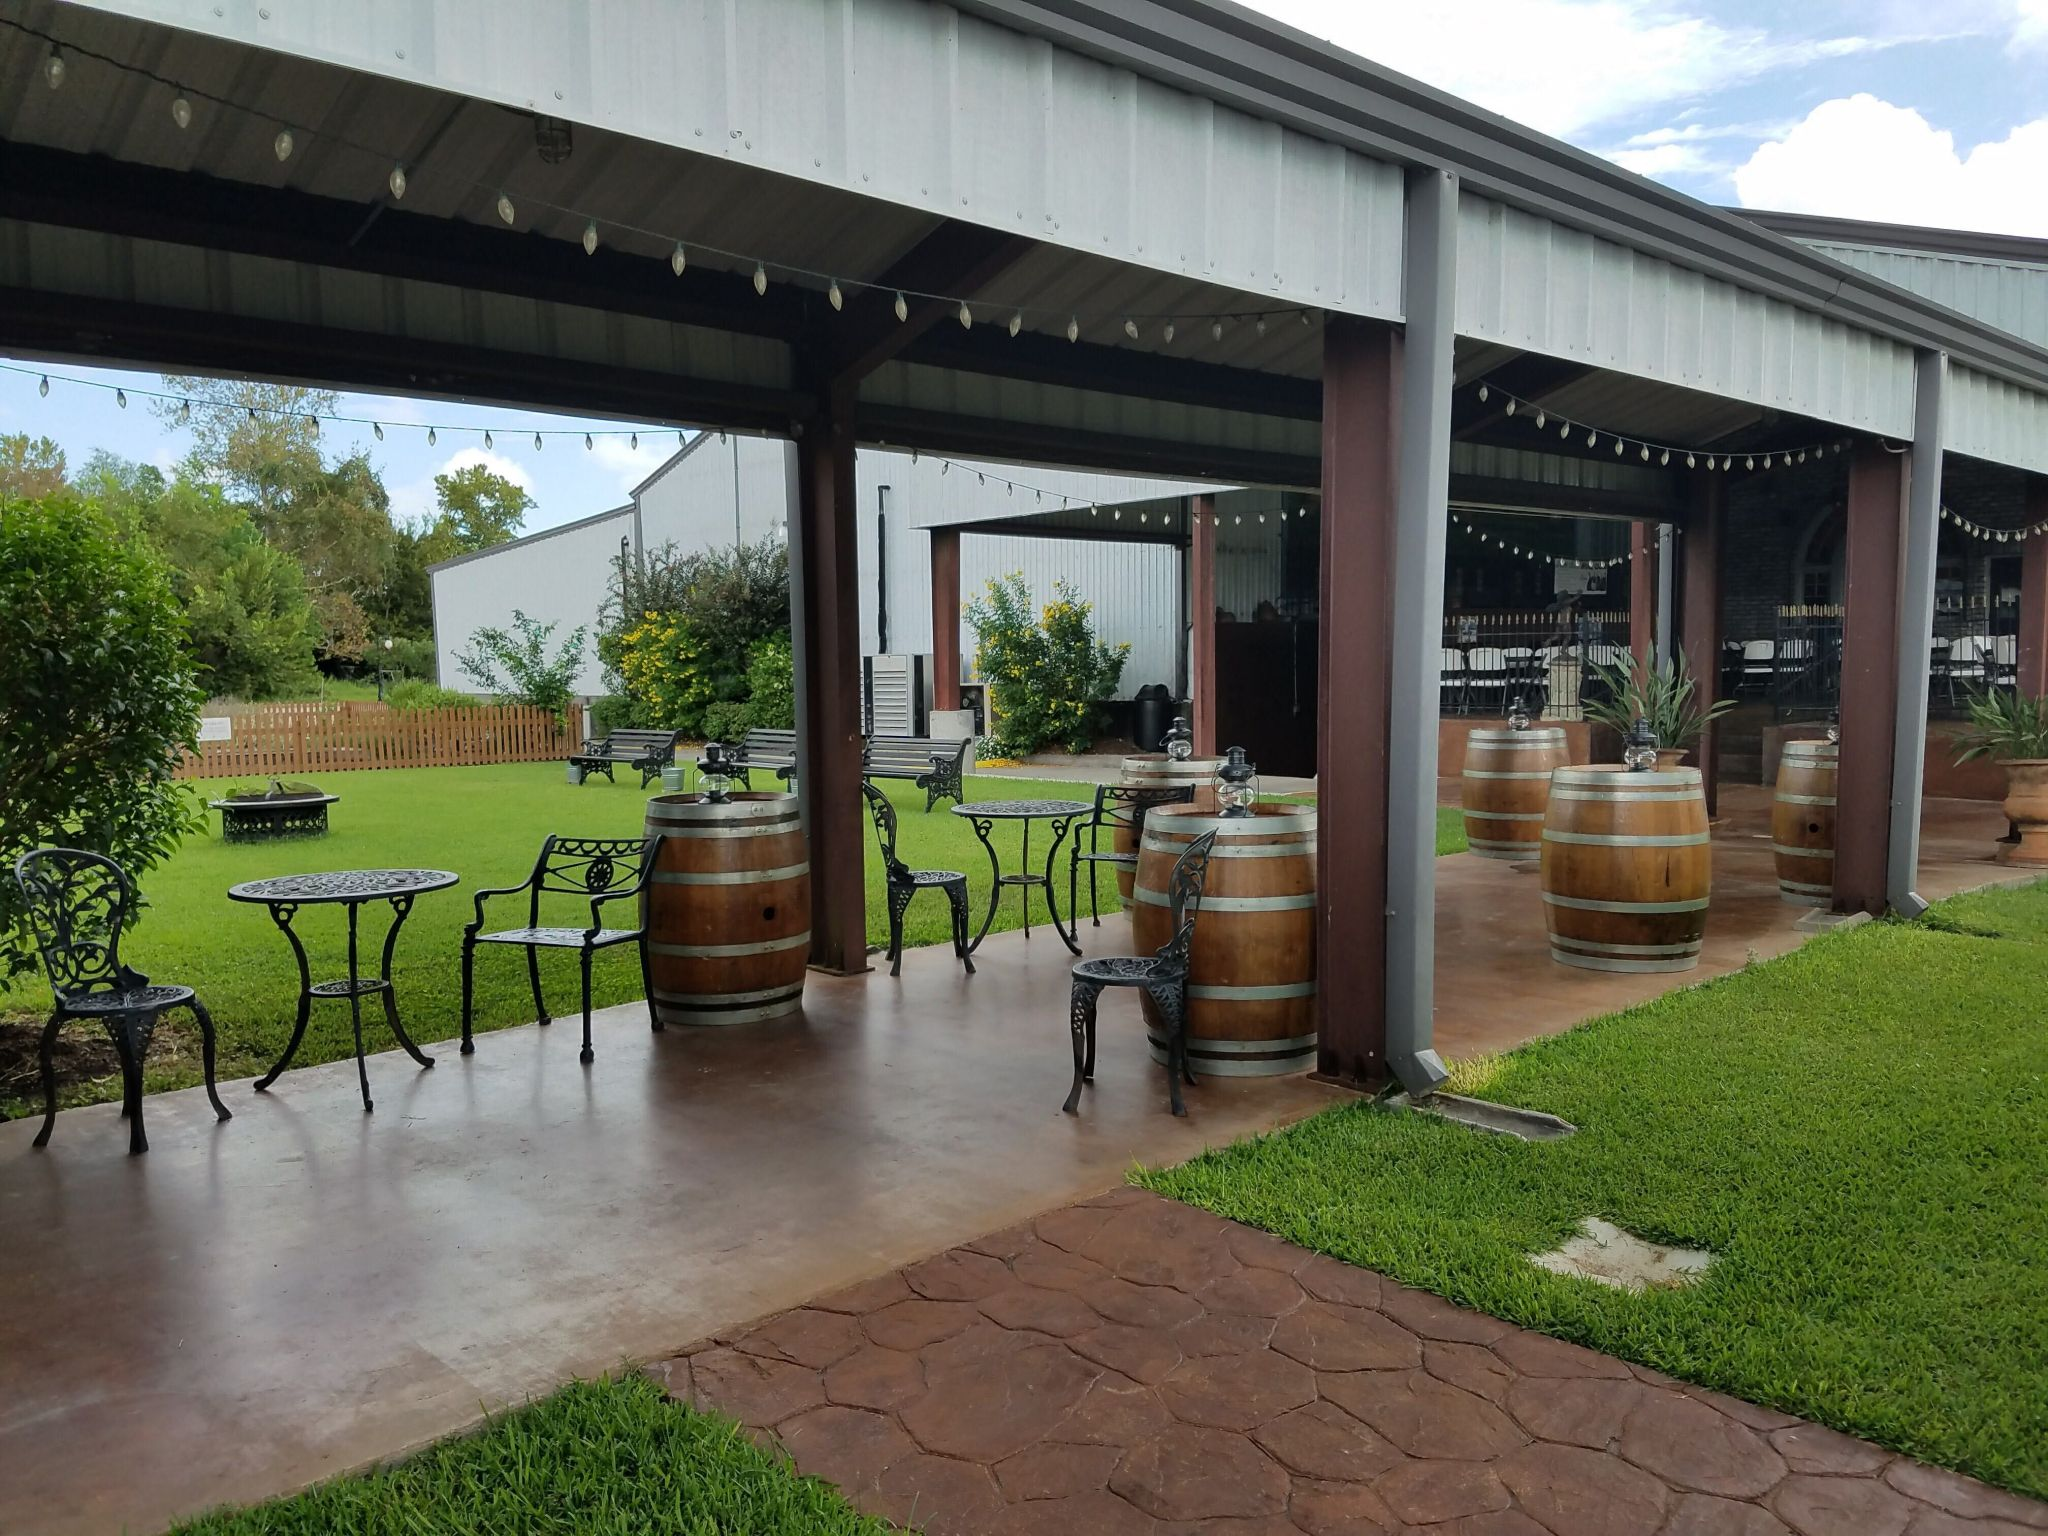 Headed to the beach? Visit Galveston County's only winery